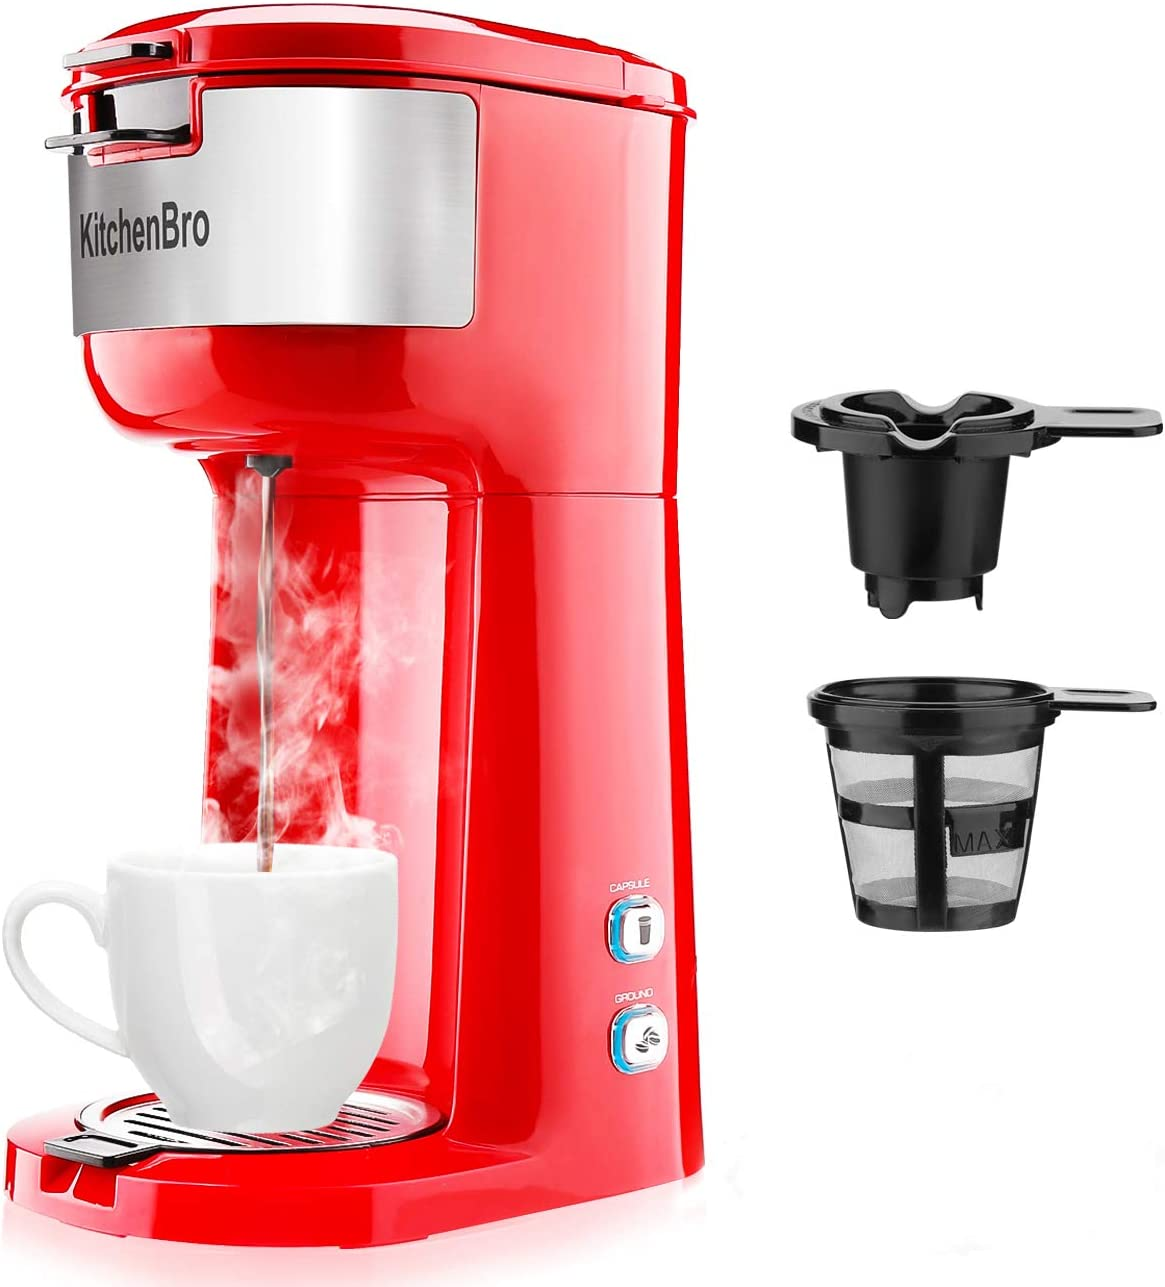 Single Serve Coffee Maker for K-Cup Pod Ground Coffee, Small Size Coffee Machine,Fast brewing,Strength Control and Self Cleaning Function by KitchenBro